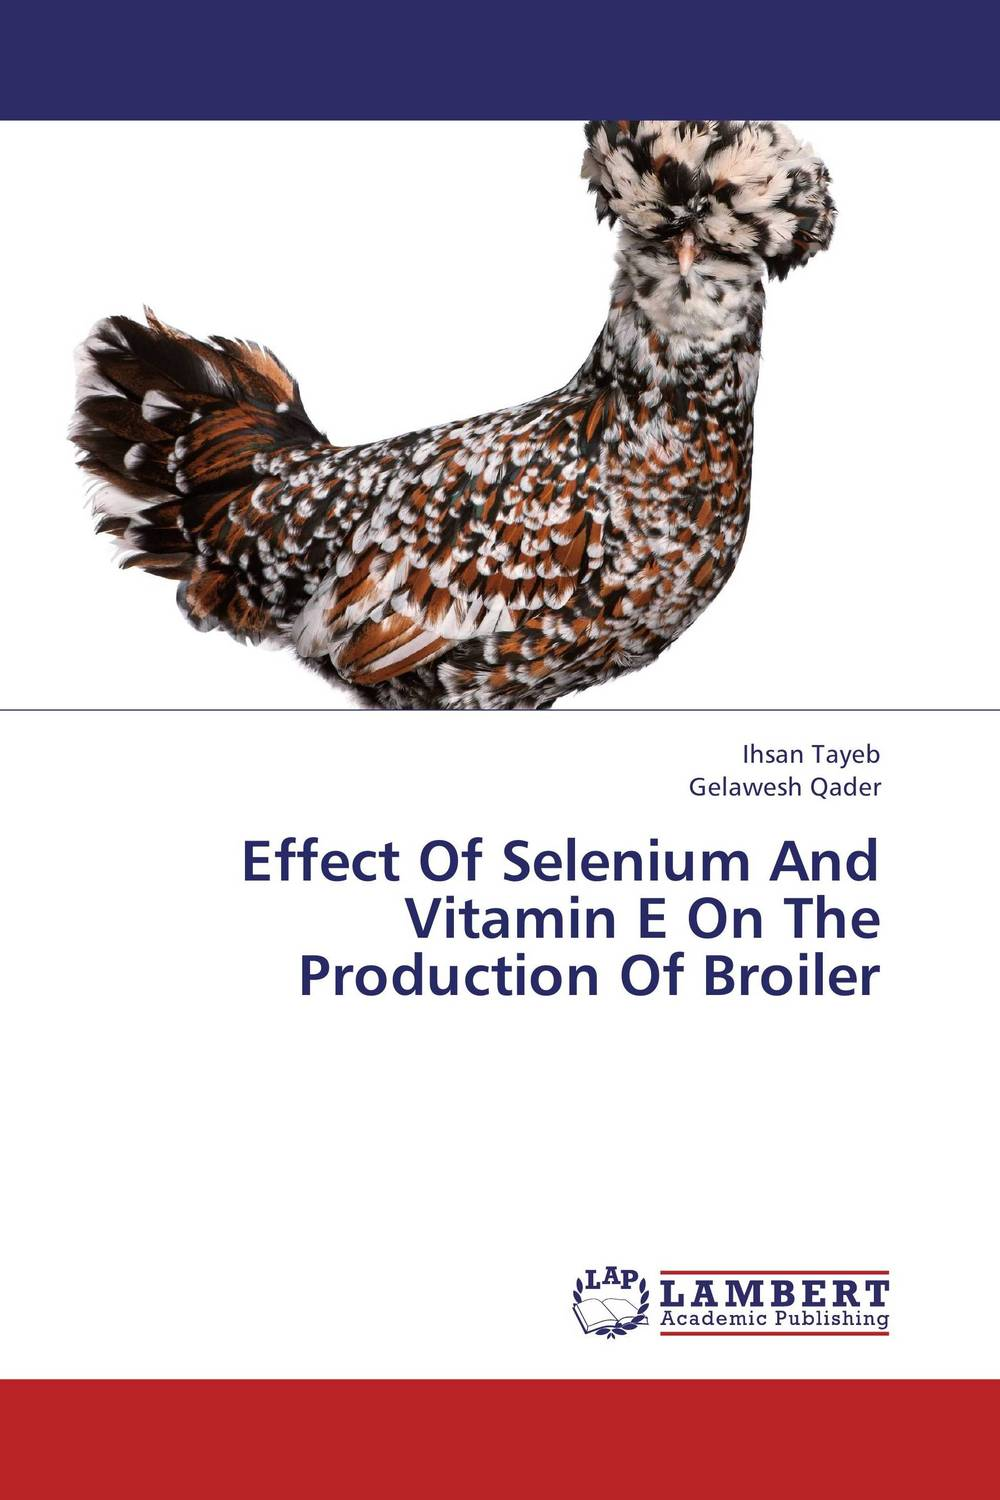 купить Effect Of Selenium And Vitamin E On The Production Of Broiler недорого